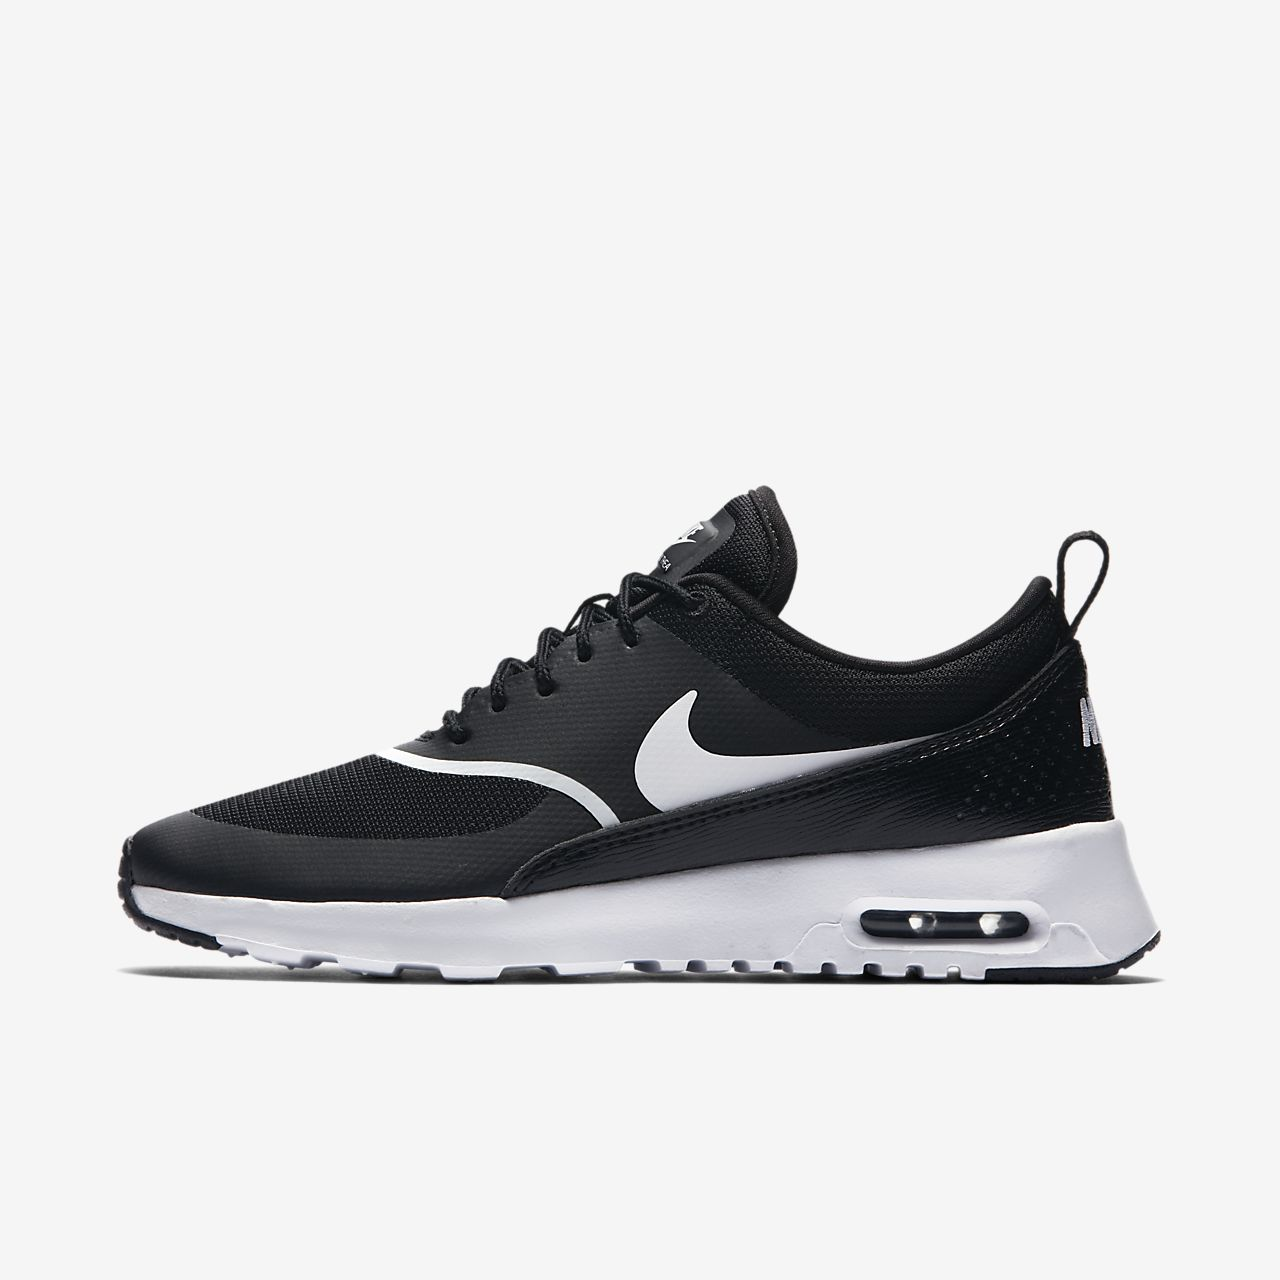 uk availability 2cc56 20dc6 ... Nike Air Max Thea Damenschuh